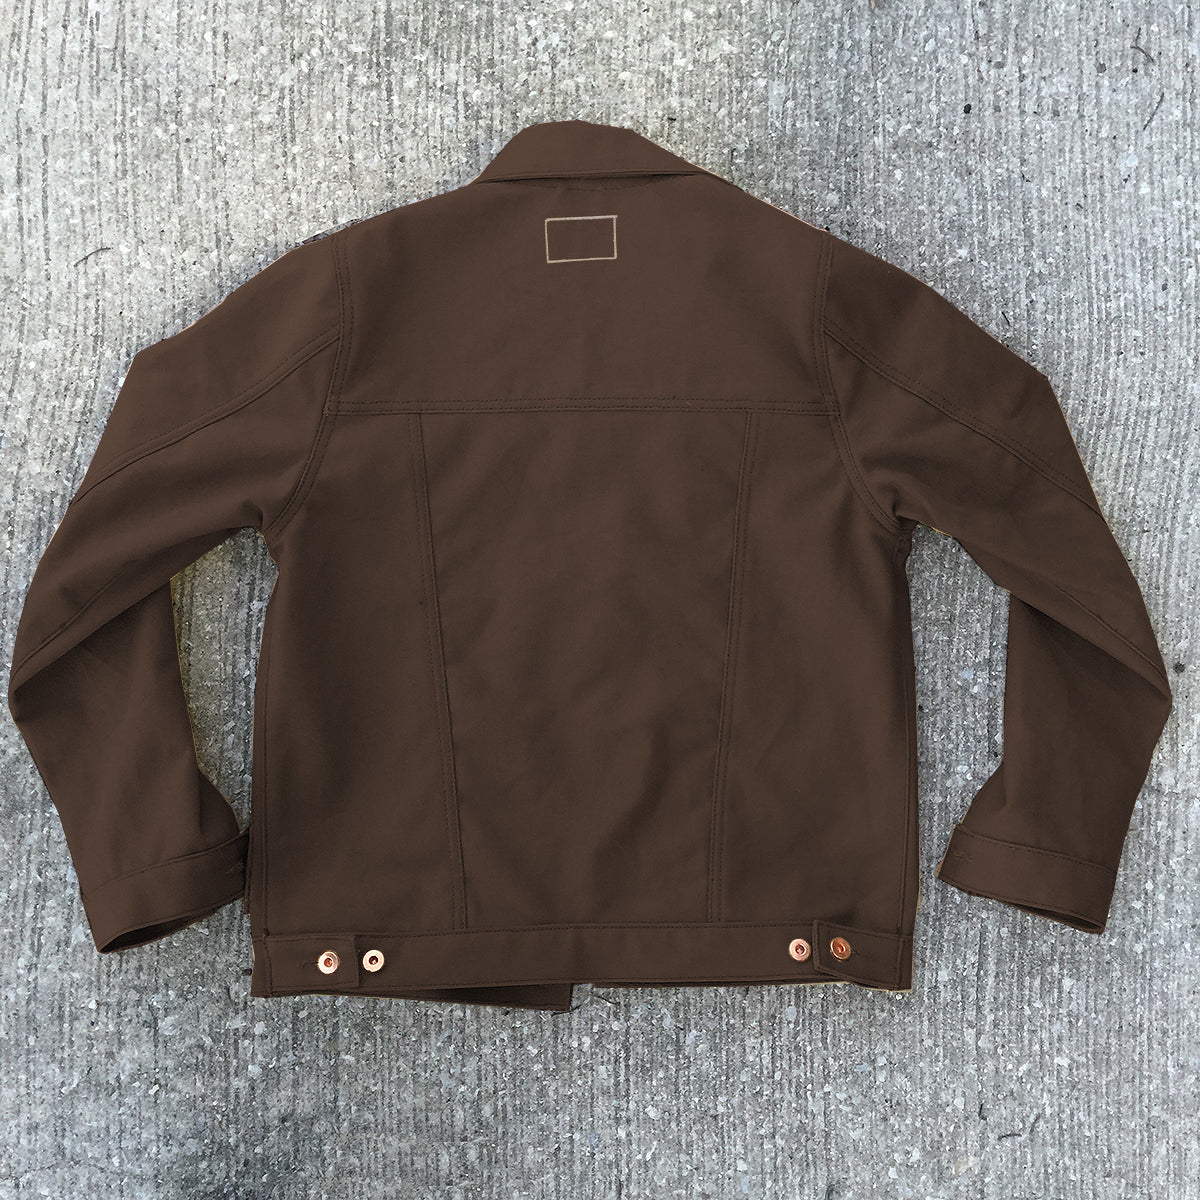 18oz BROWN Duck Canvas Field Hand Jacket